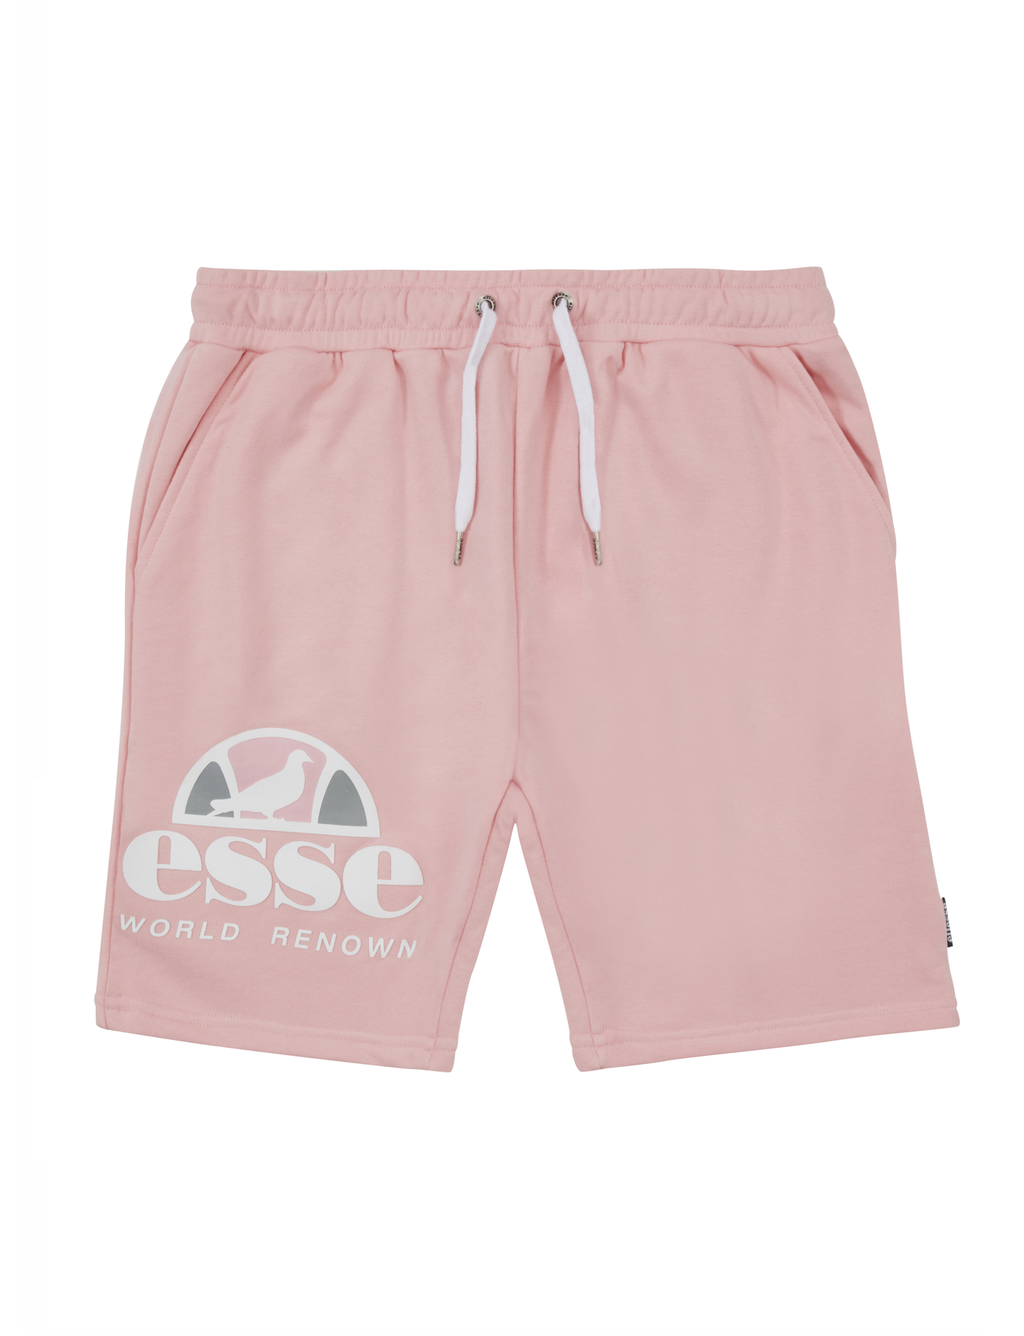 Staple x ellesse Charlton Shorts - Shorts | Staple Pigeon